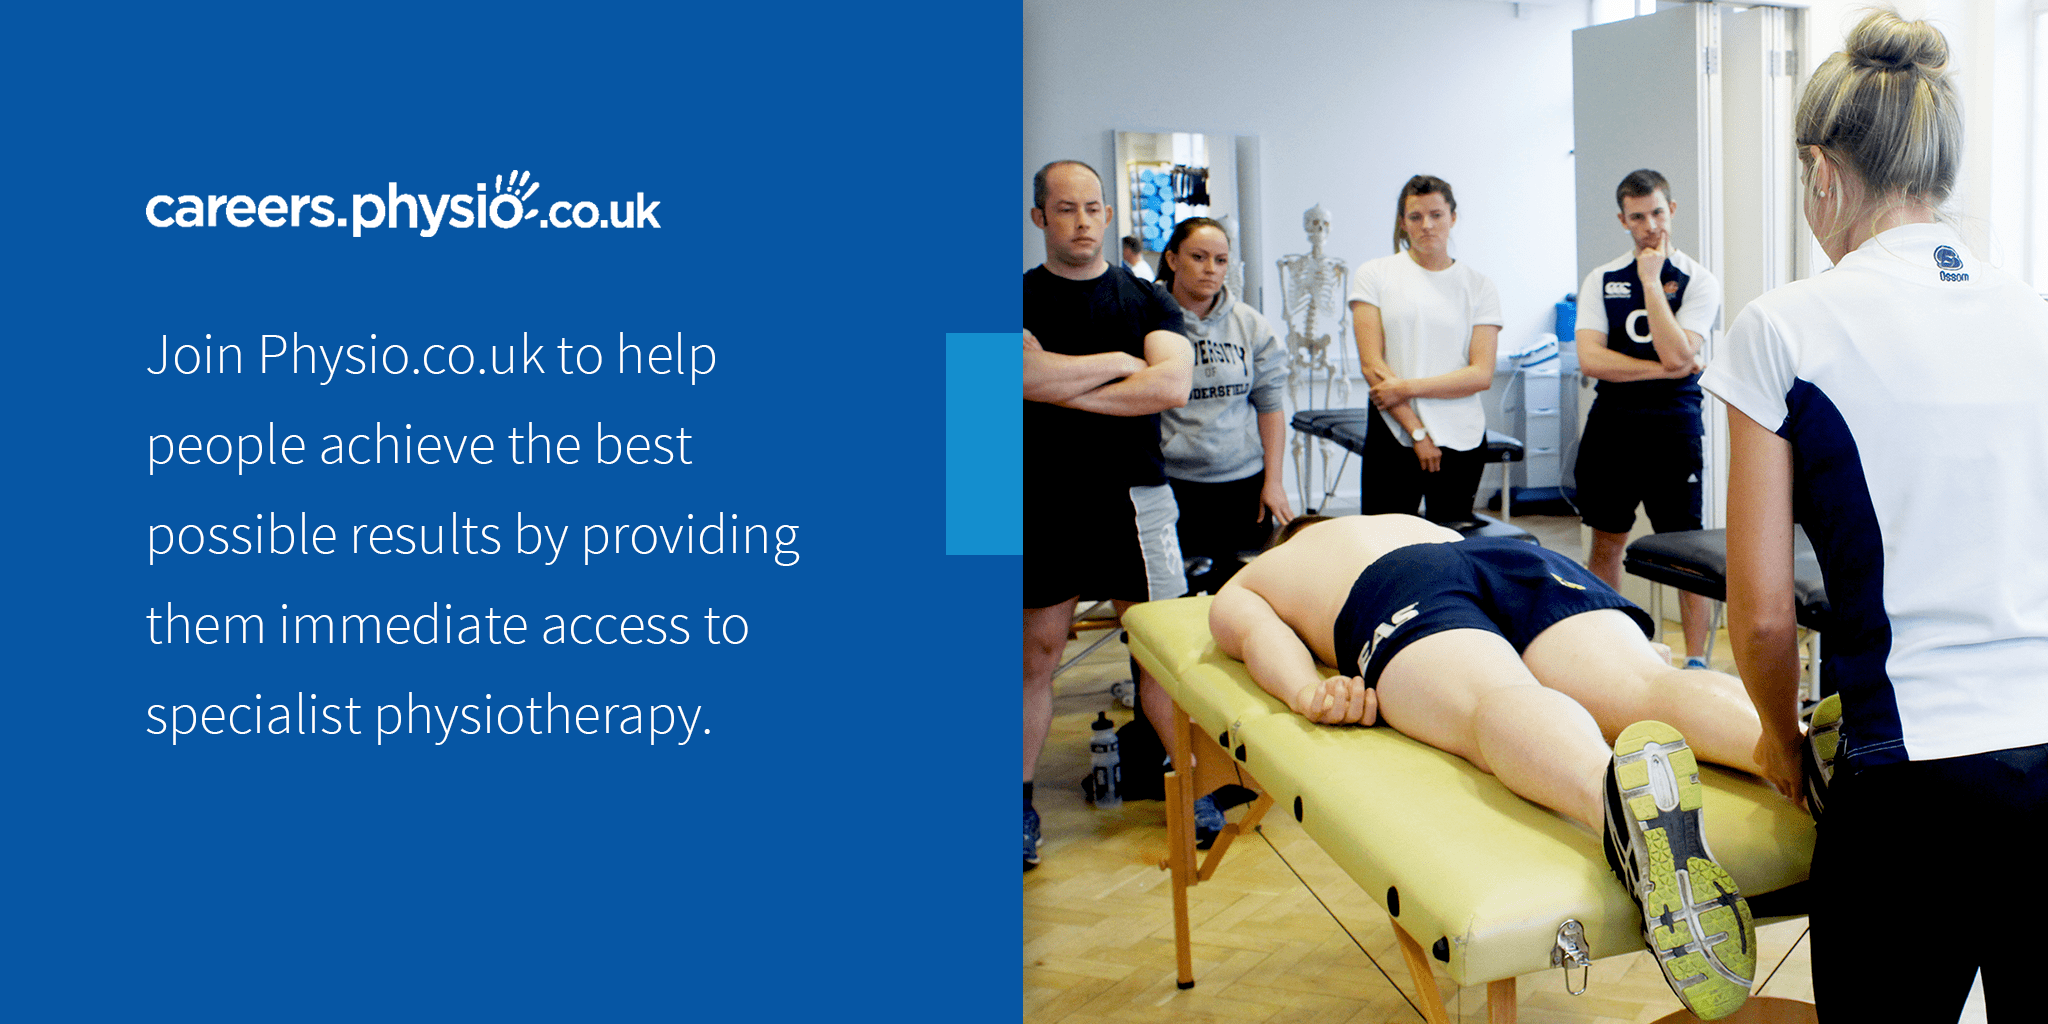 Visit careers.physio.co.uk to apply